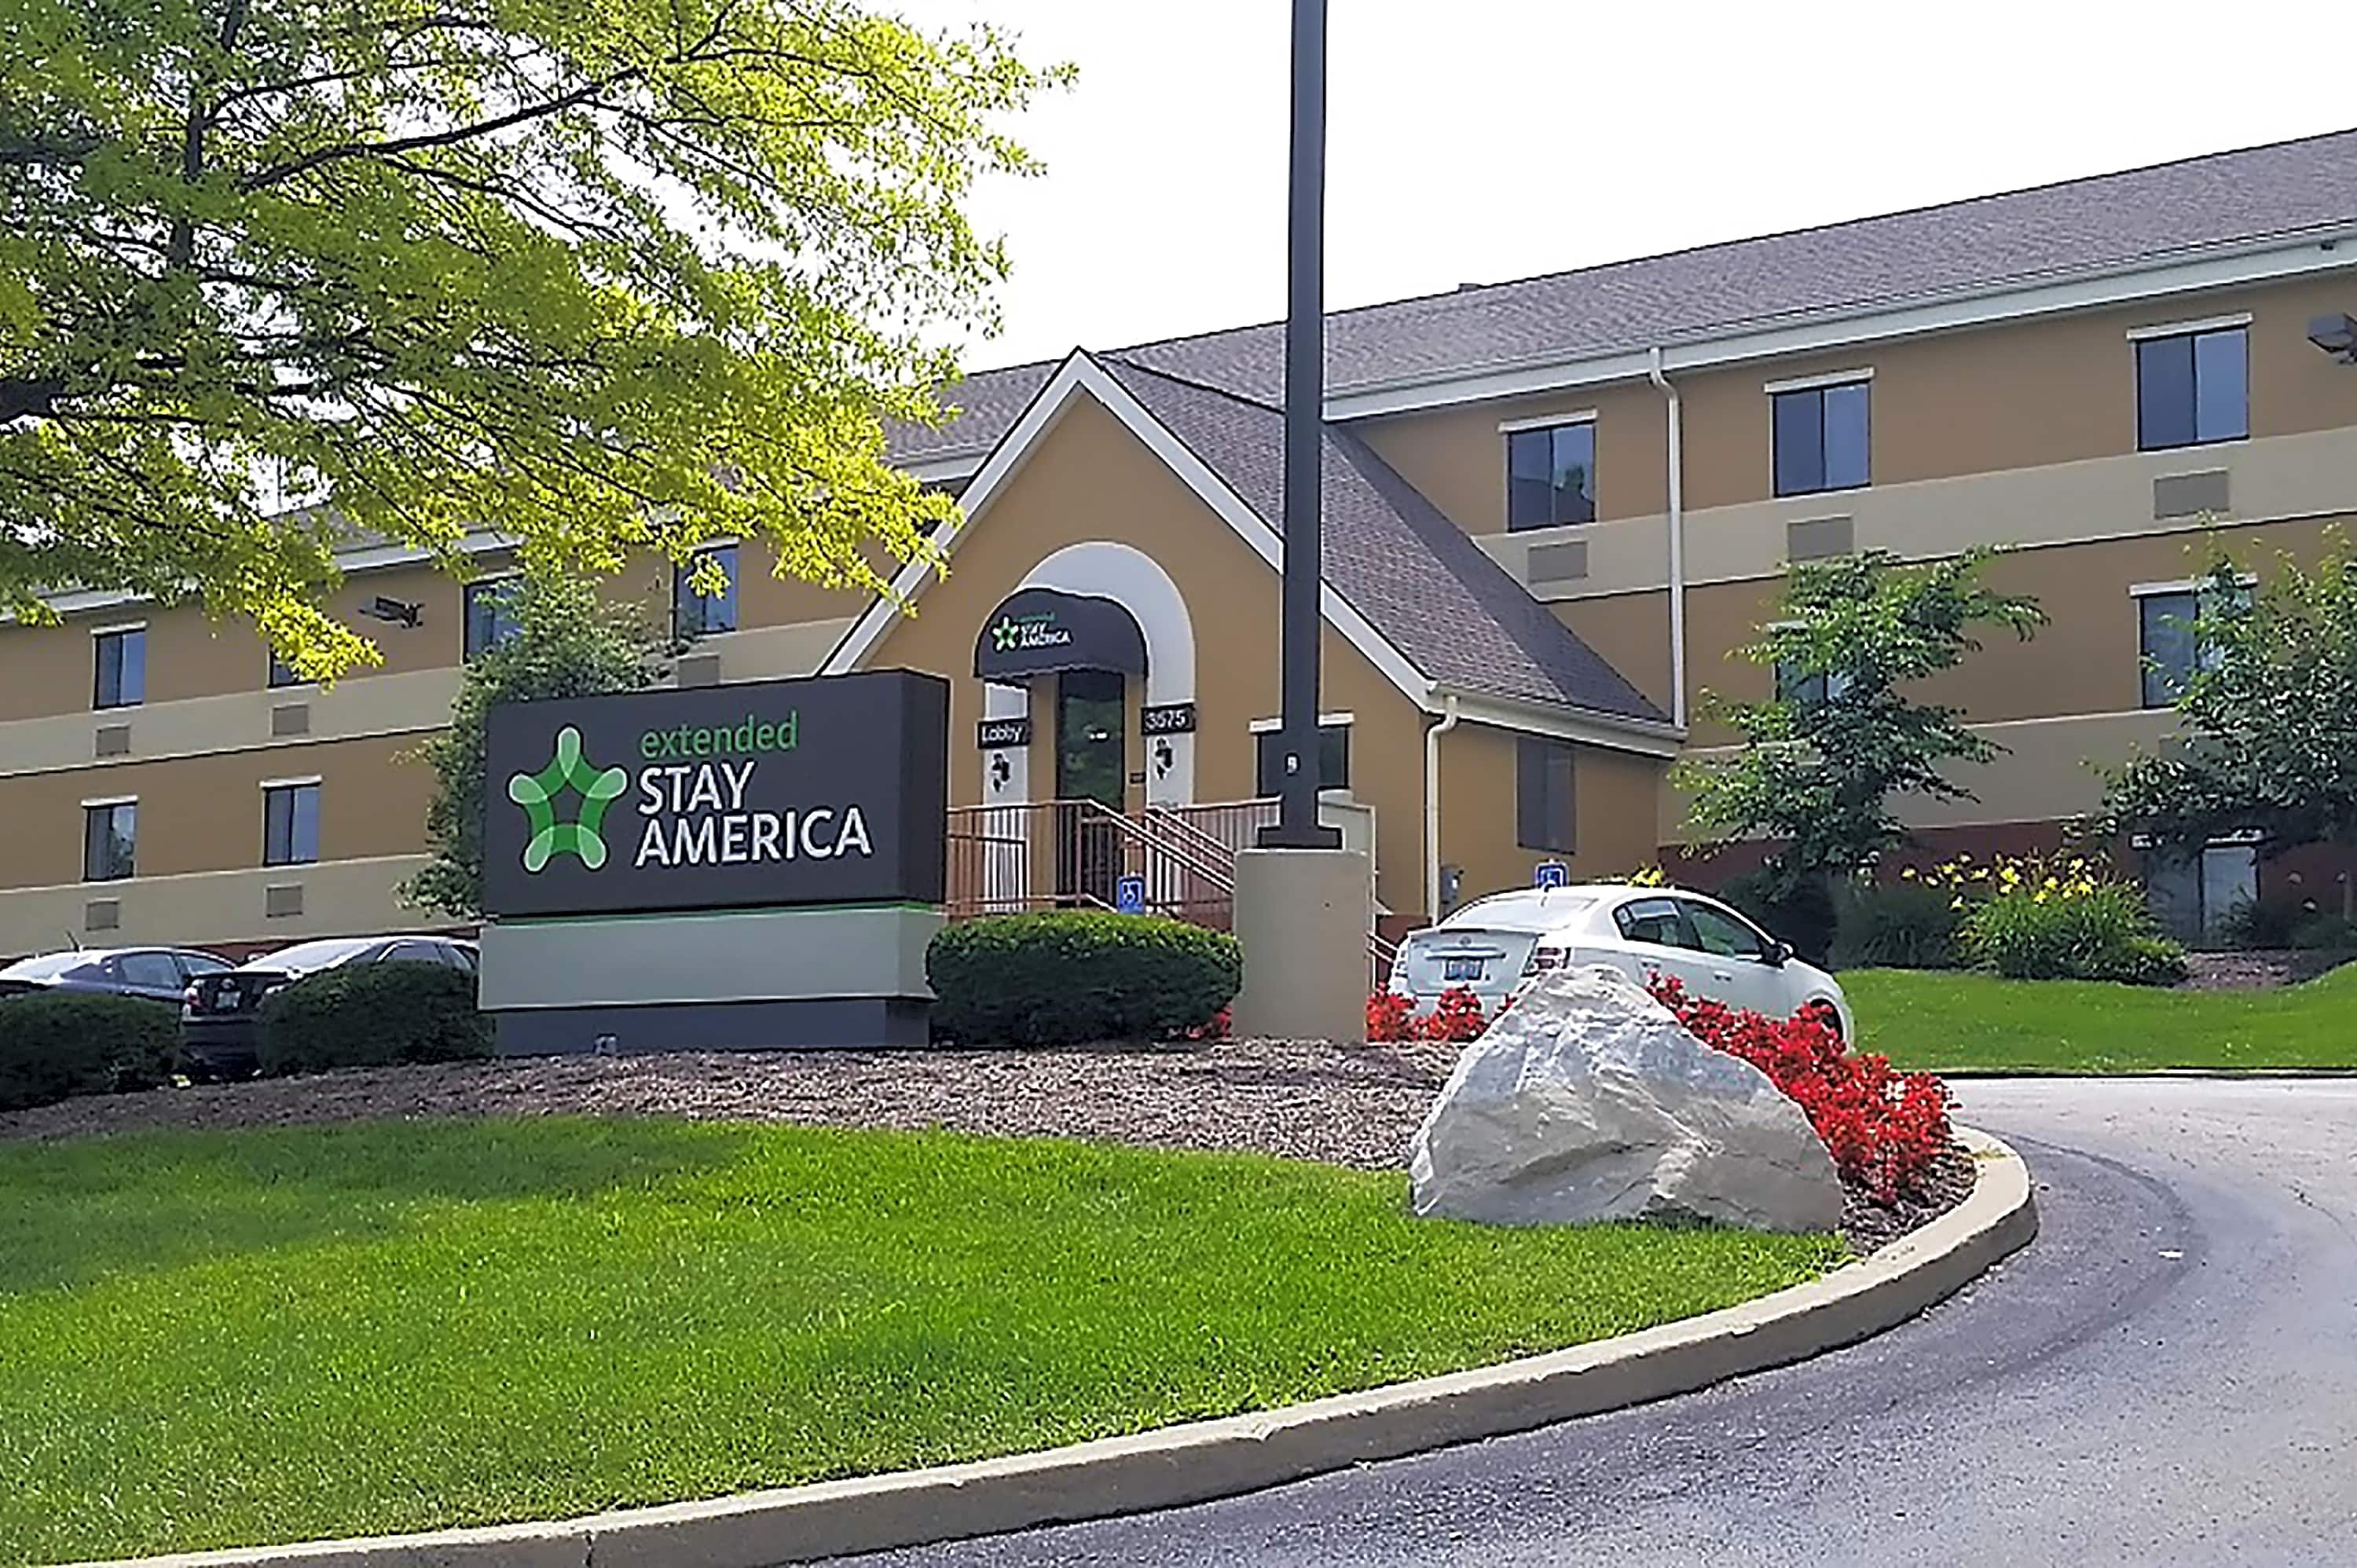 Apartments Near Asbury Seminary Furnished Studio - Lexington - Tates Creek for Asbury Theological Seminary Students in Wilmore, KY